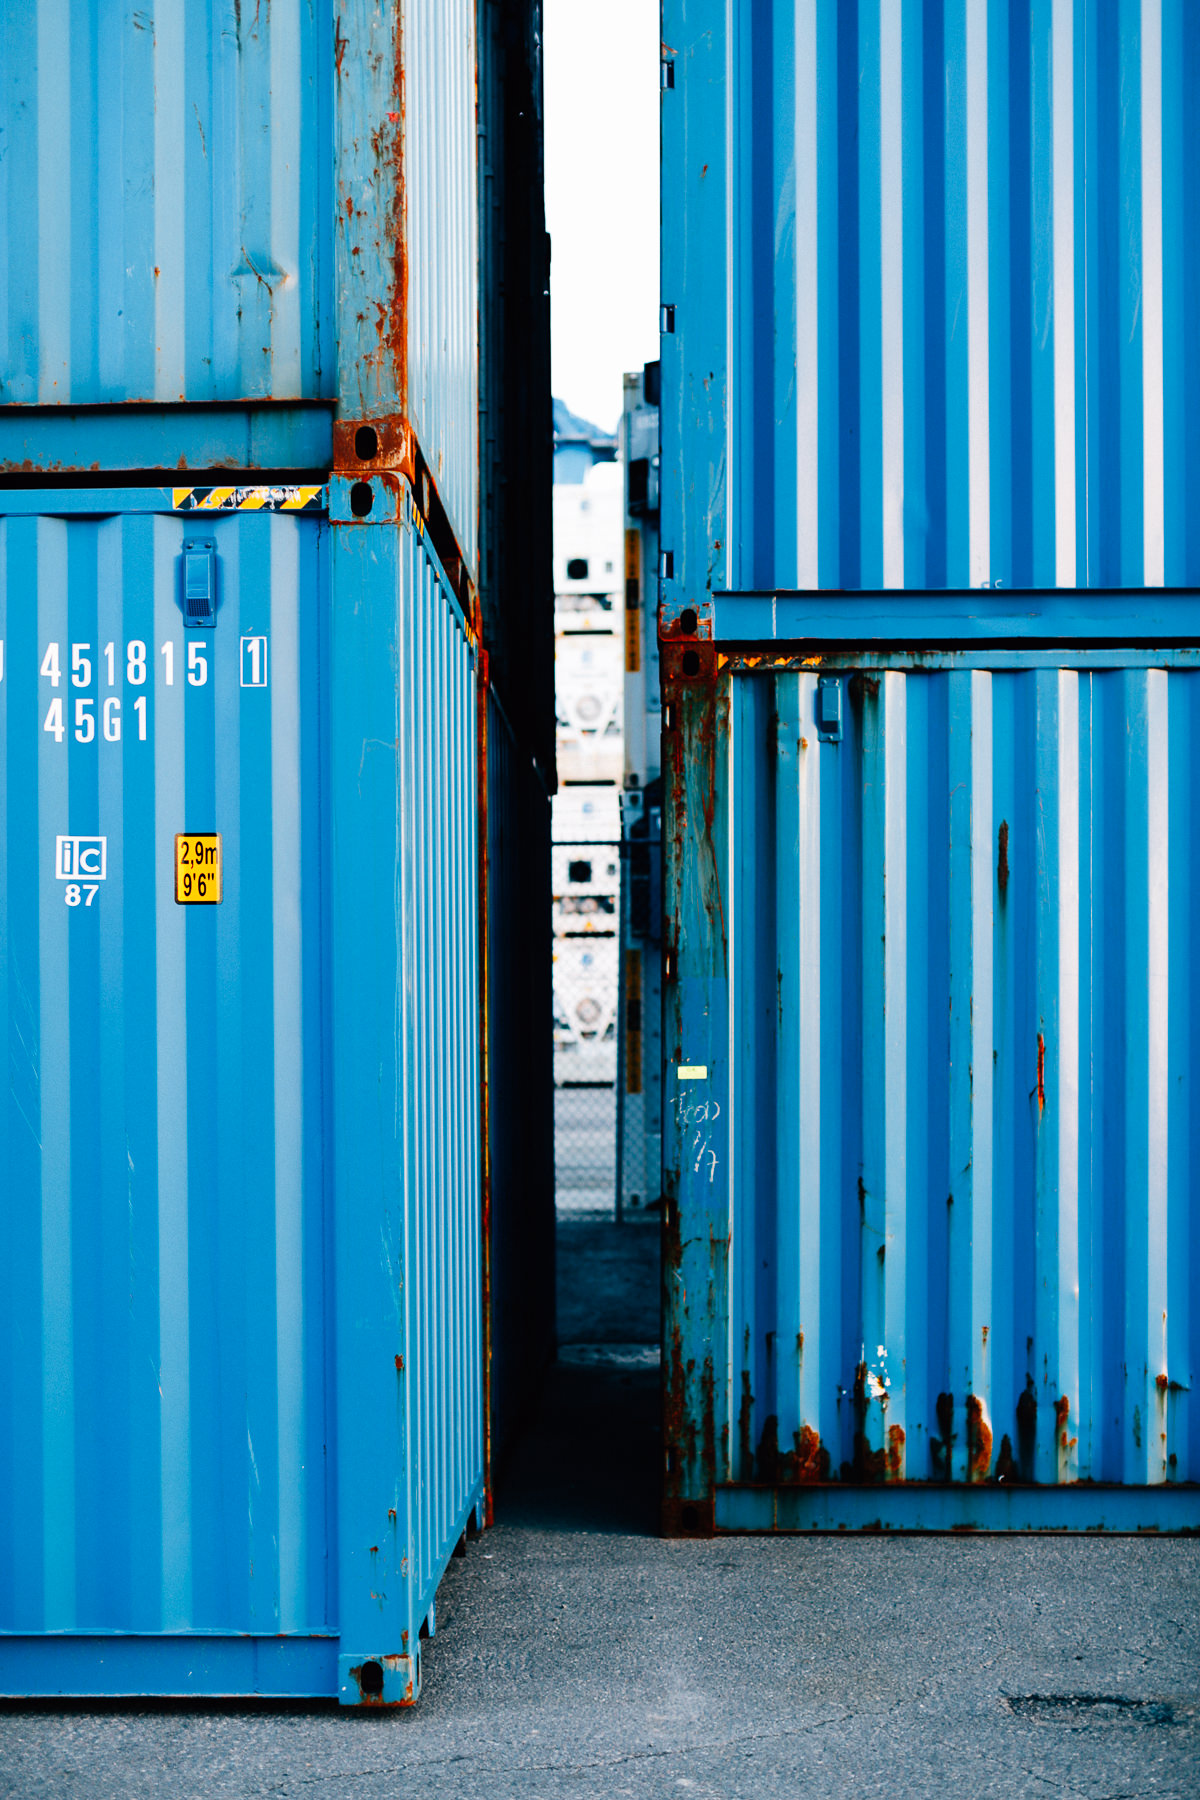 Eimskip Containers at the International Marine Terminal. © Justin Levesque 2017